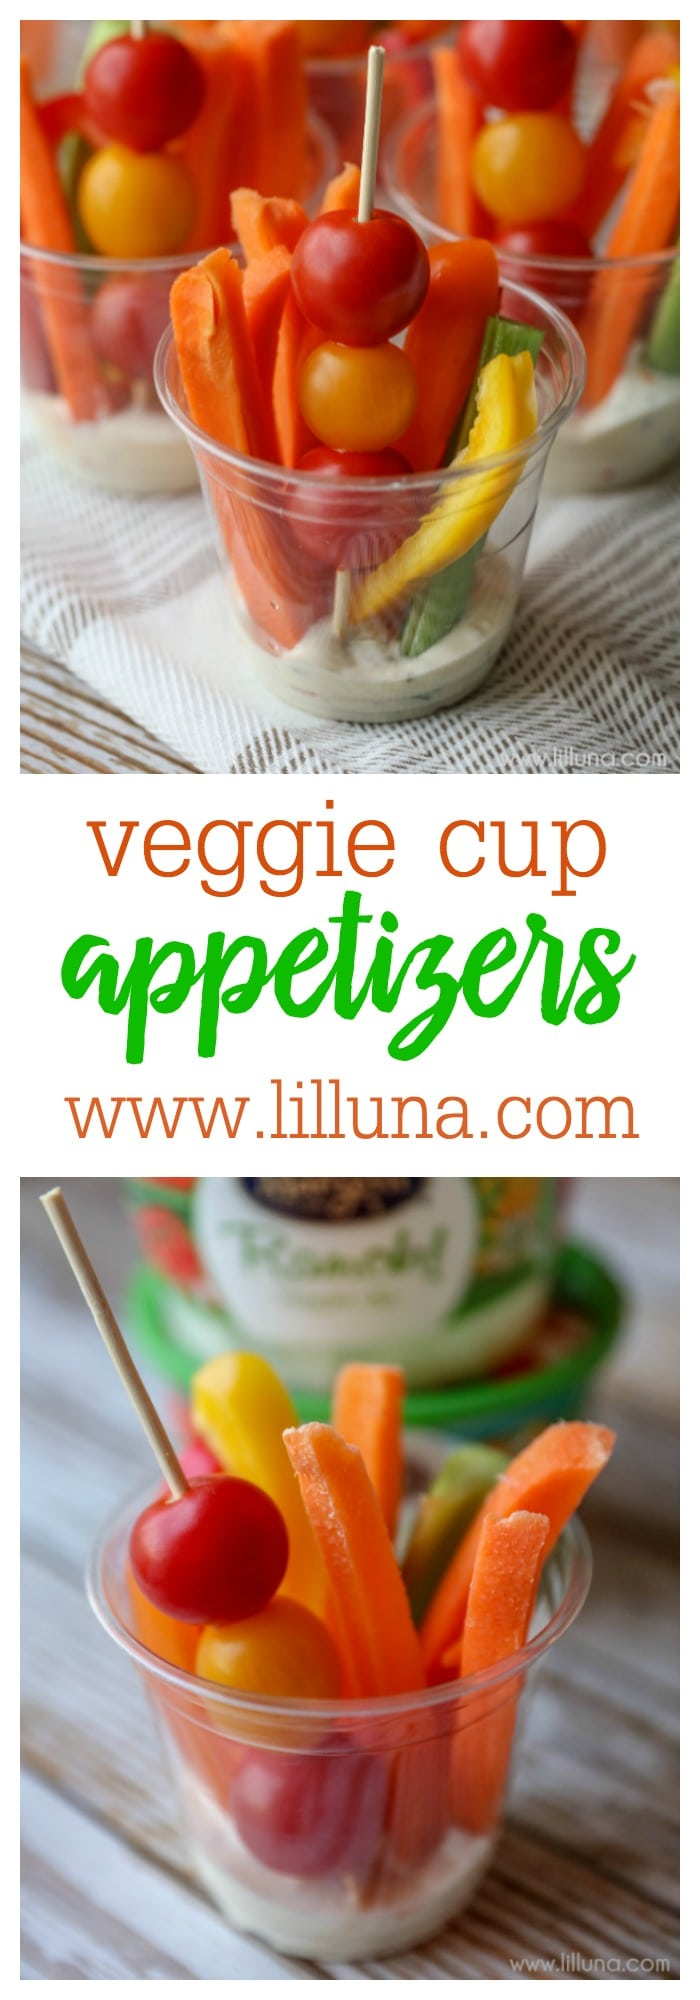 Veggie Cup Appetizers - perfect for parties and after school snacks for the kids!